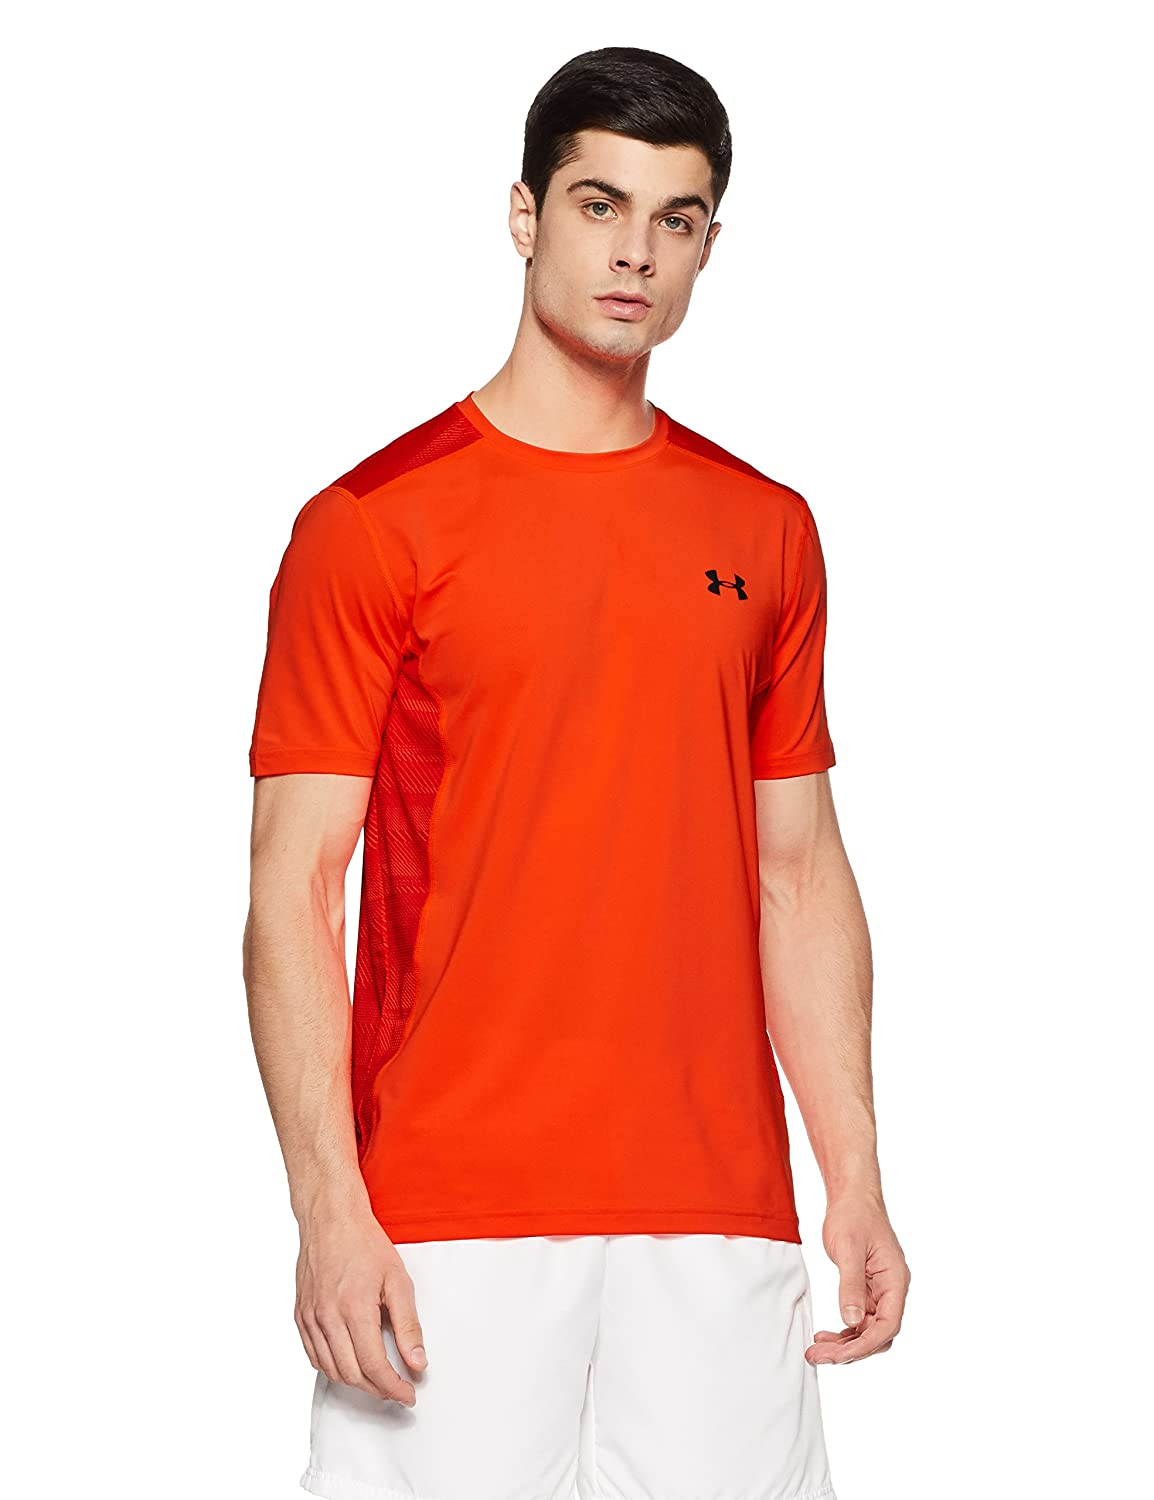 (アンダーアーマー) UNDER ARMOUR ヒットヒートギアSS(トレーニング/Tシャツ/MEN)[1257466] B01M27599L Large|Magma Orange/Stealth Gray Magma Orange/Stealth Gray Large